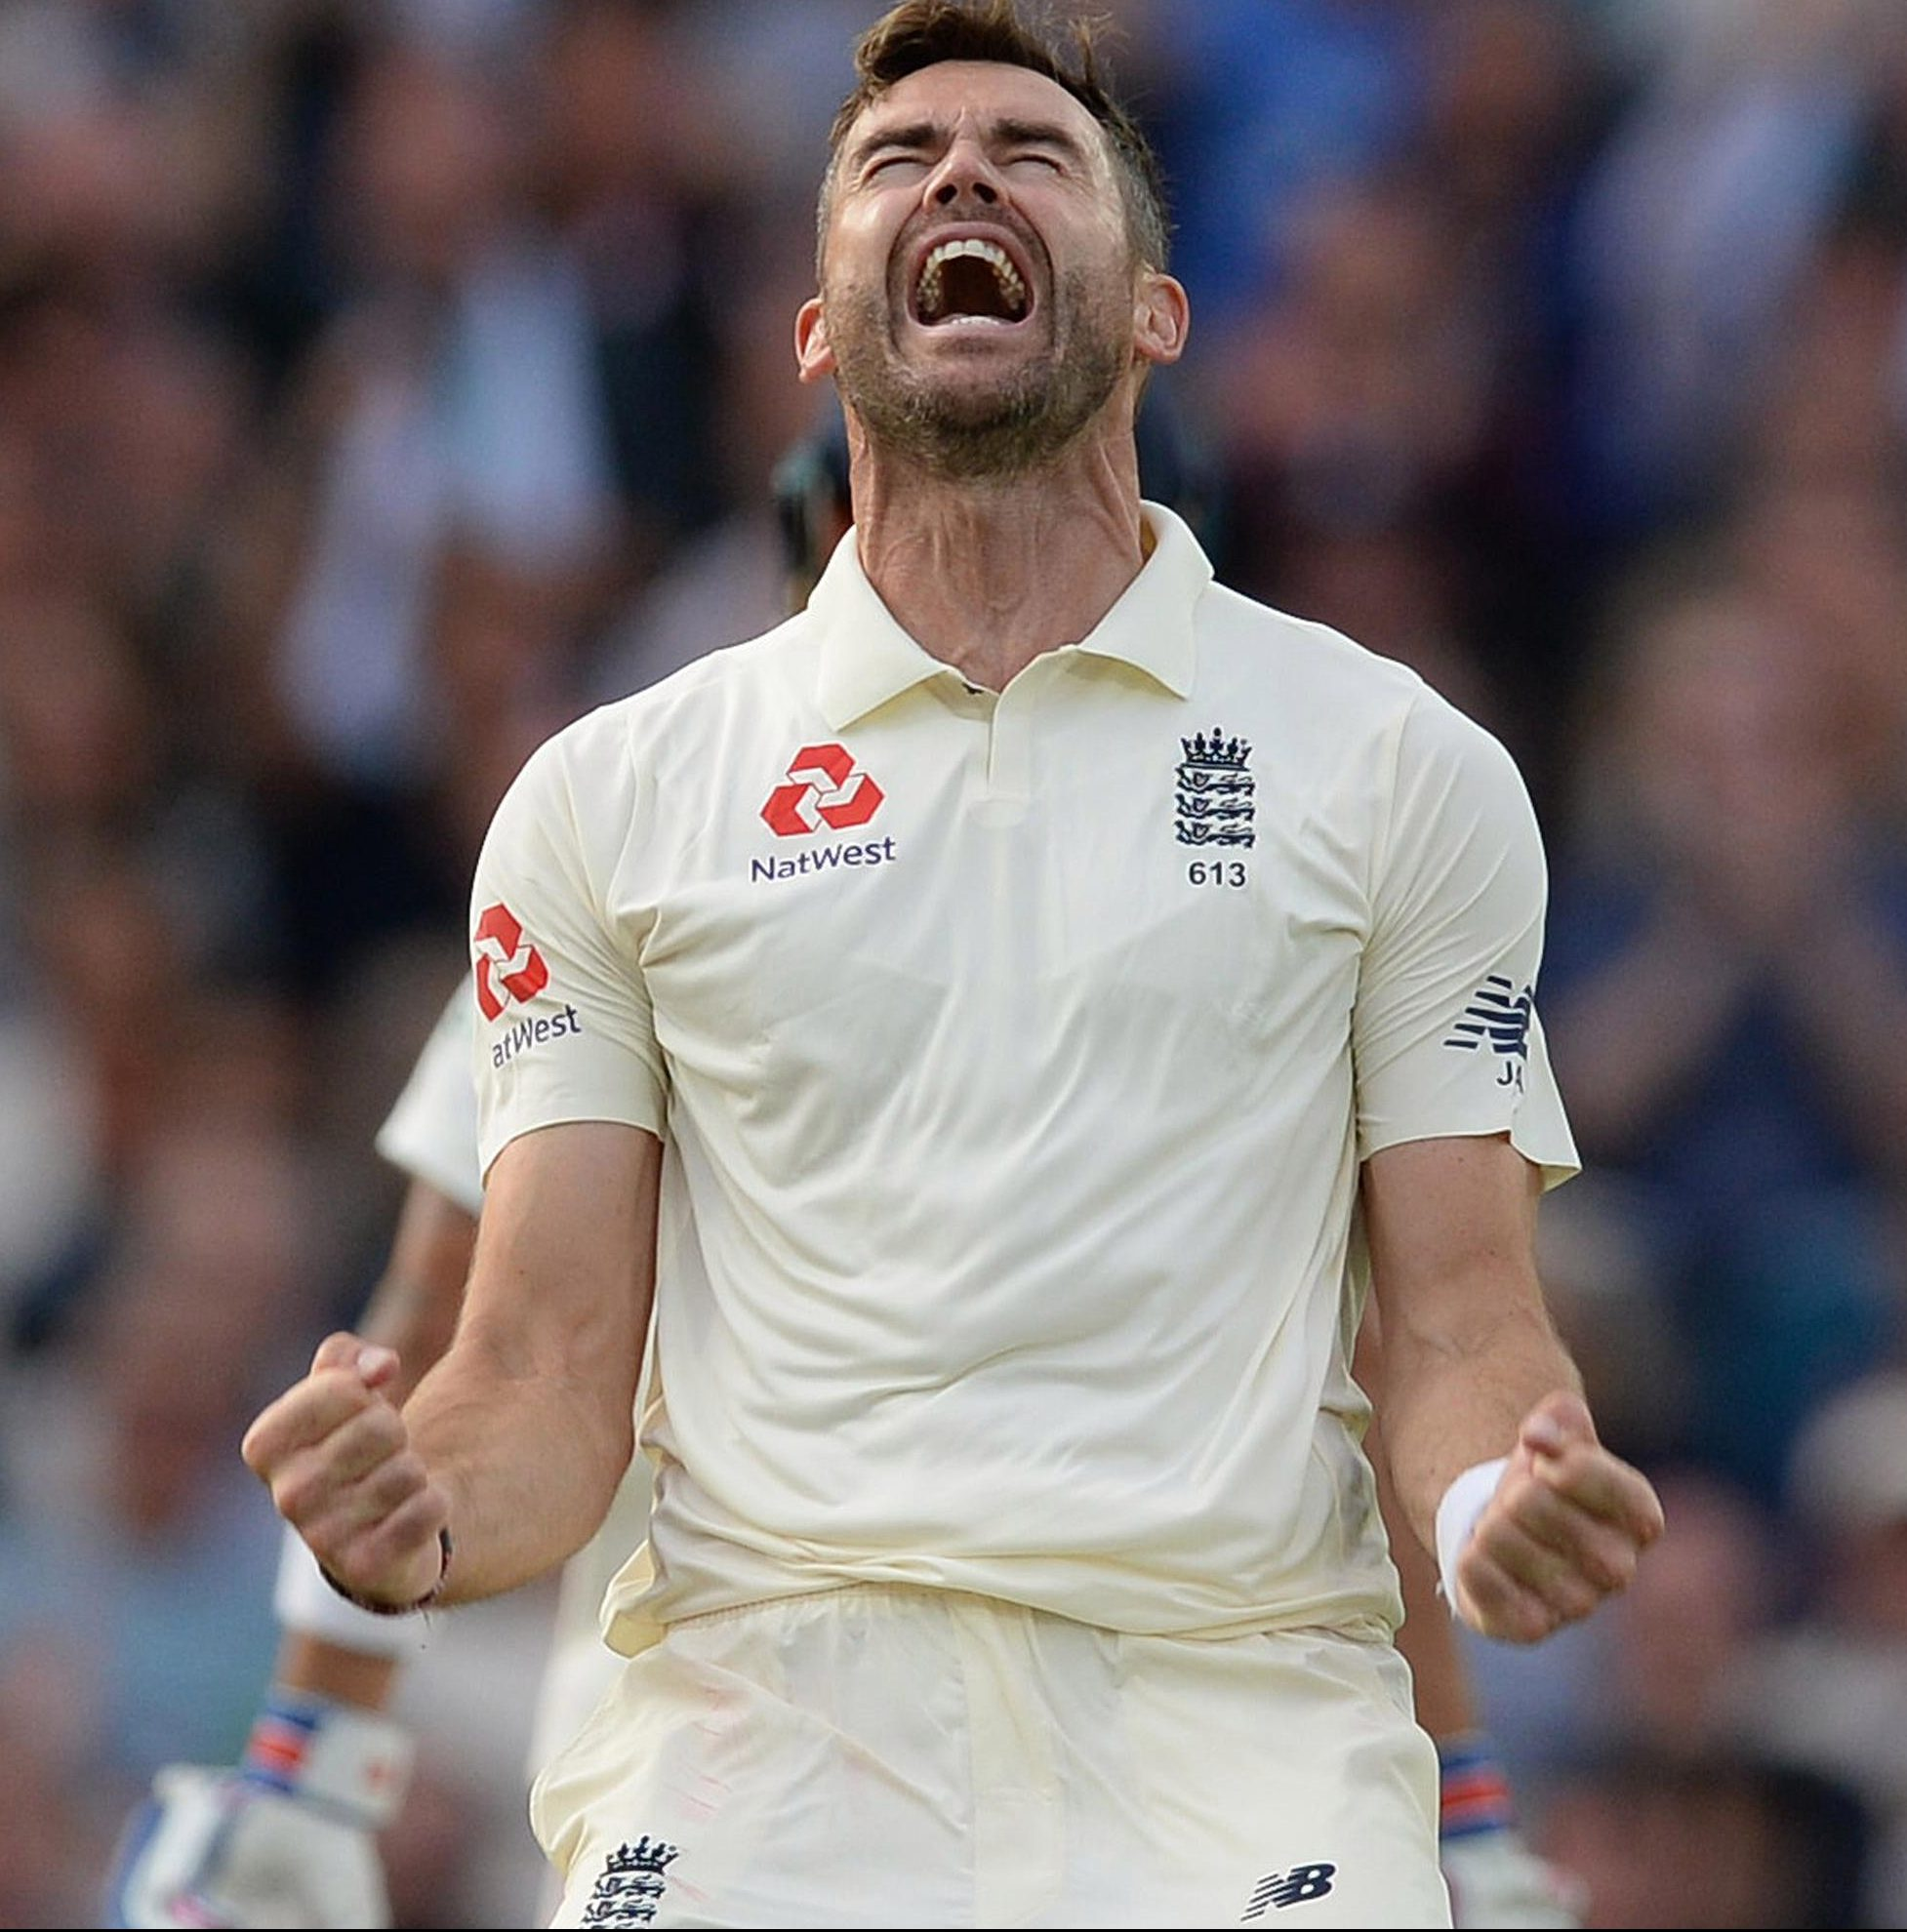 James Anderson is on 564 Test wicket and still feels ultra fit - but remembers Glenn McGrath saying the end can come on suddenly